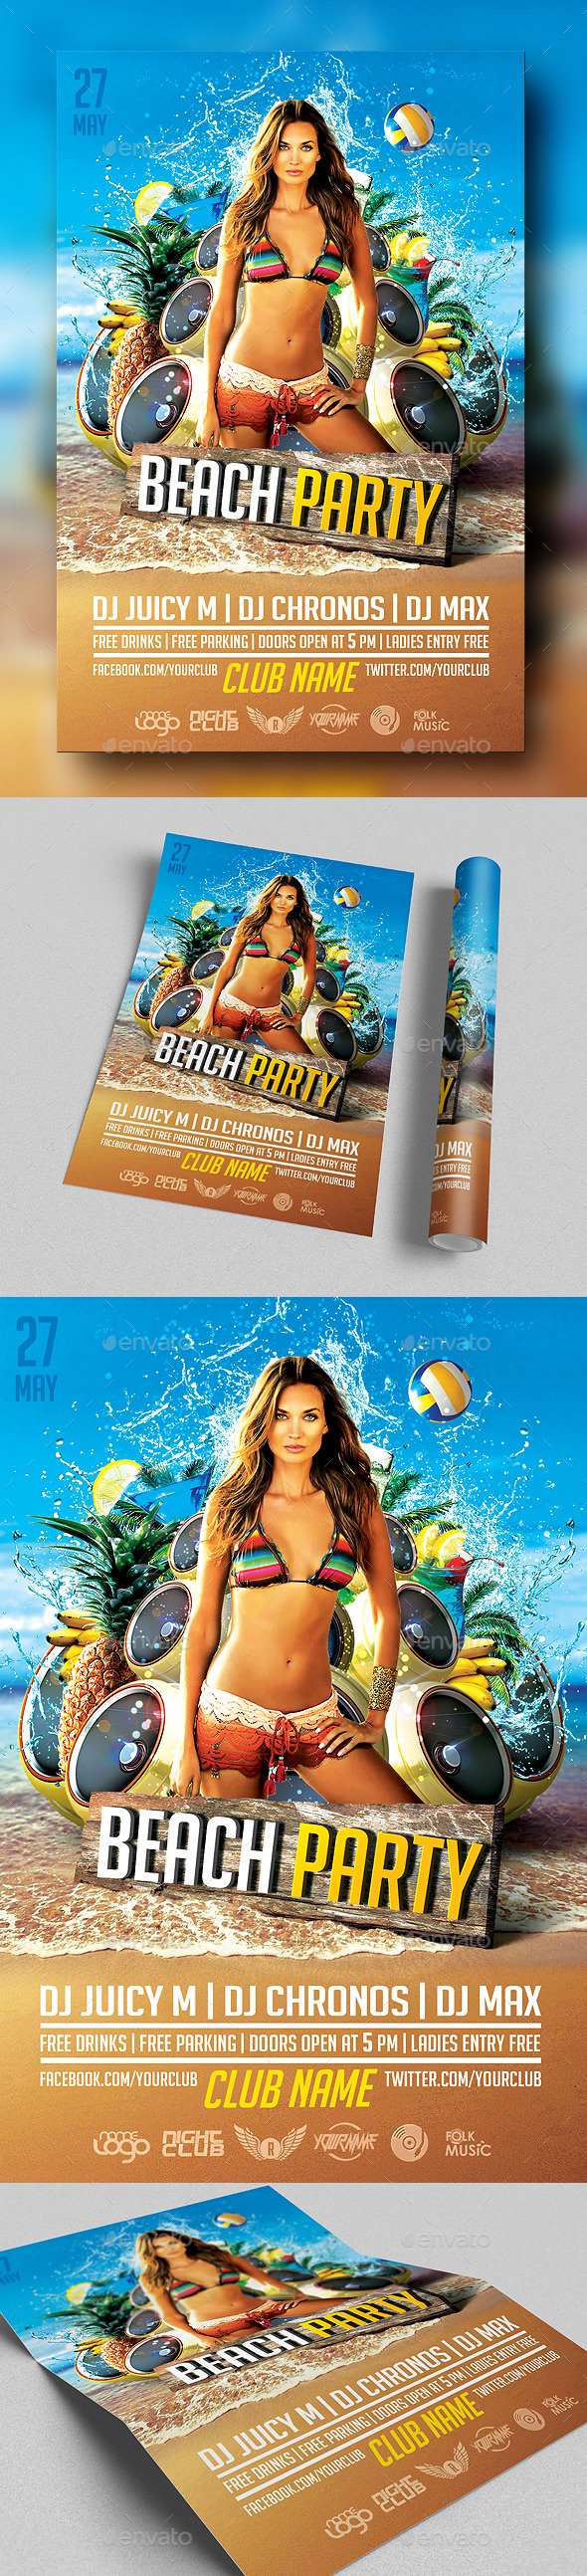 Beach Party Vol.2 - Clubs & Parties Events